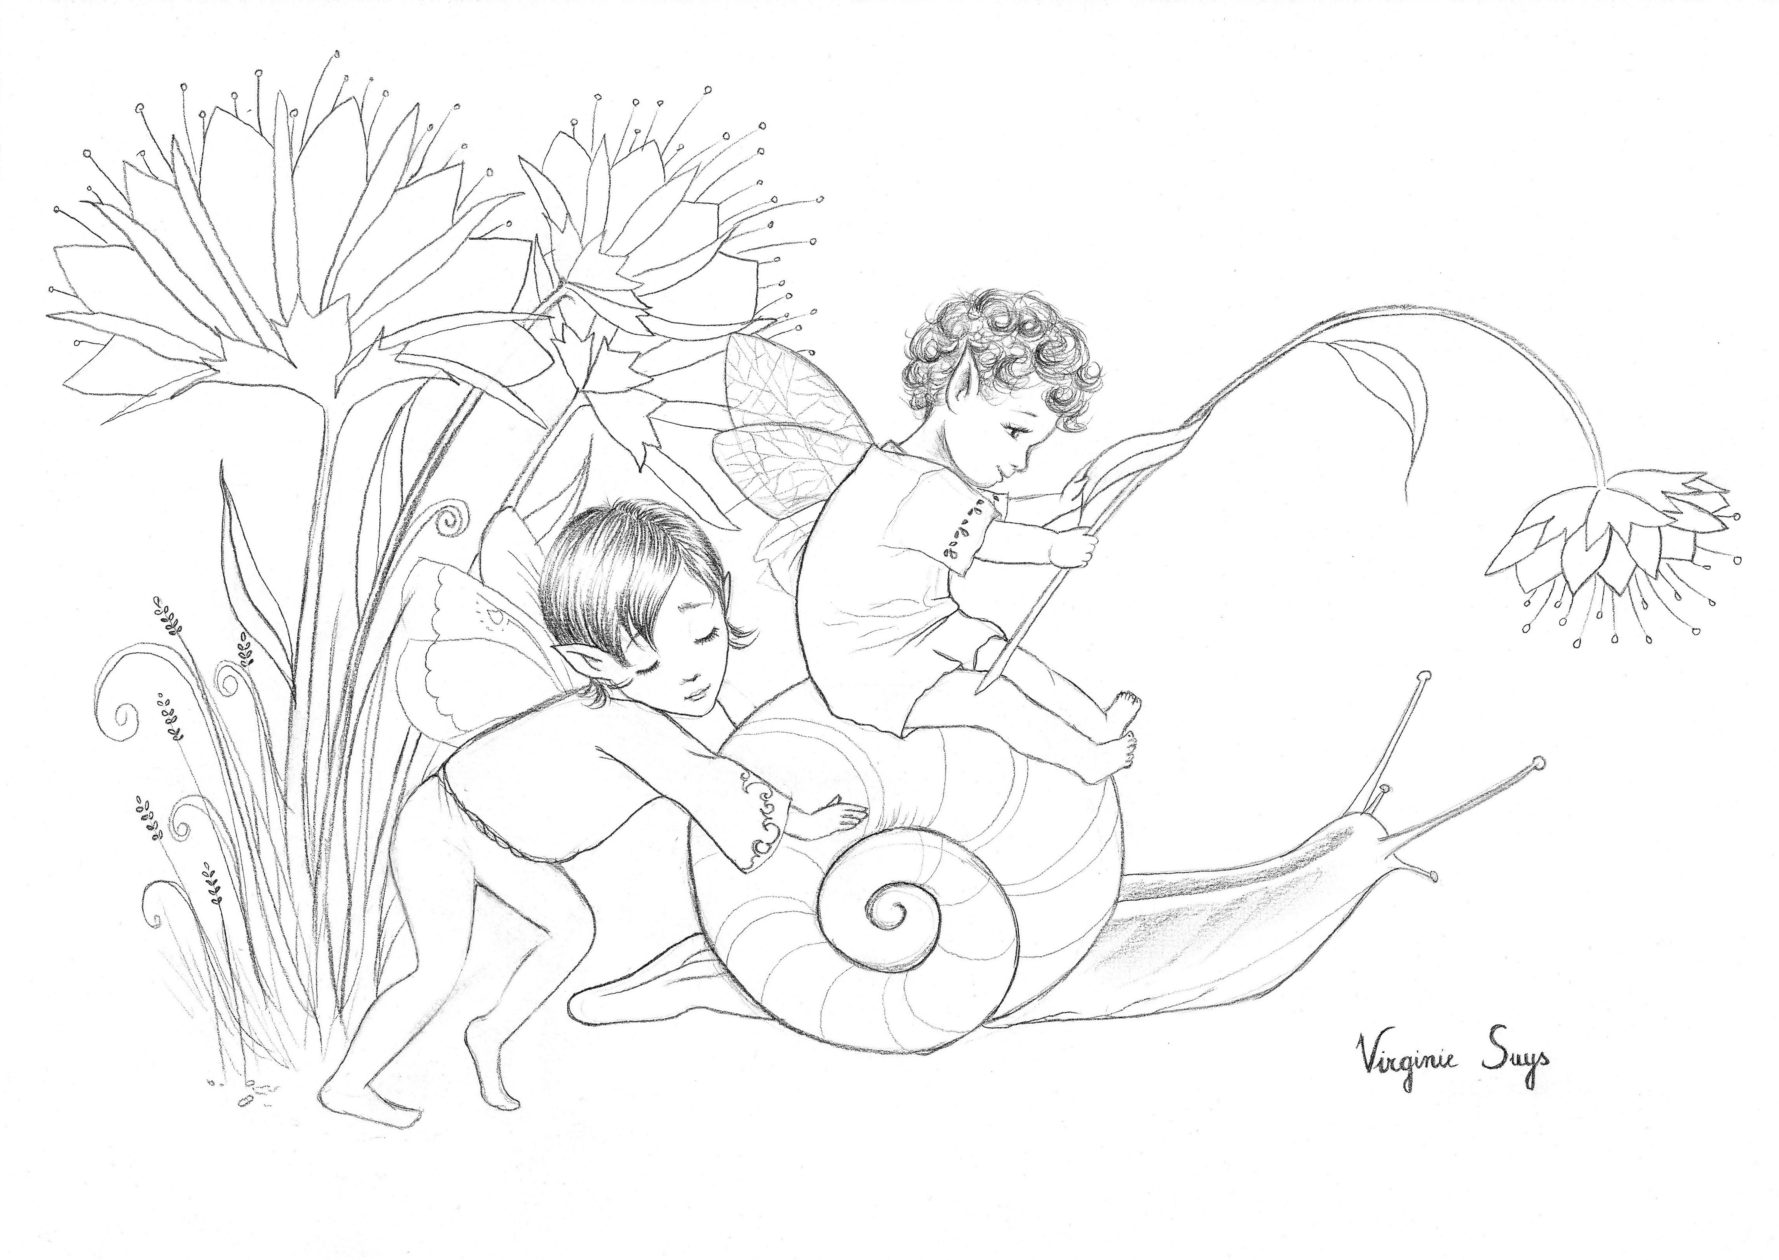 Virginie Suys Snail and fairys in black & white illustration